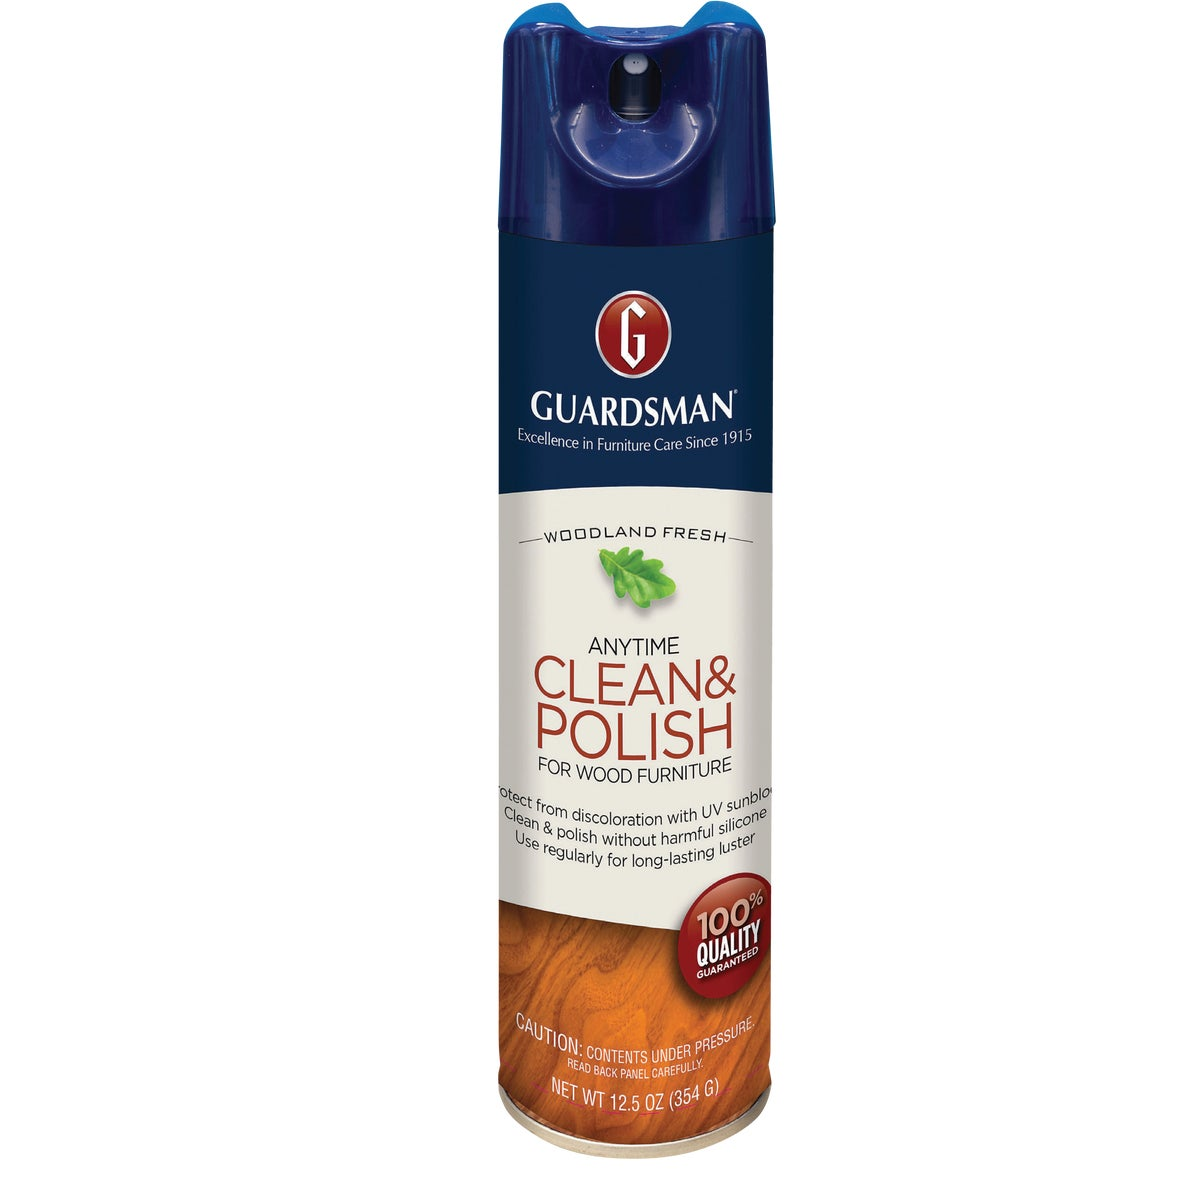 12.5OZ WDLN CLEAN&POLISH - 460100 by Valspar  Guardsman